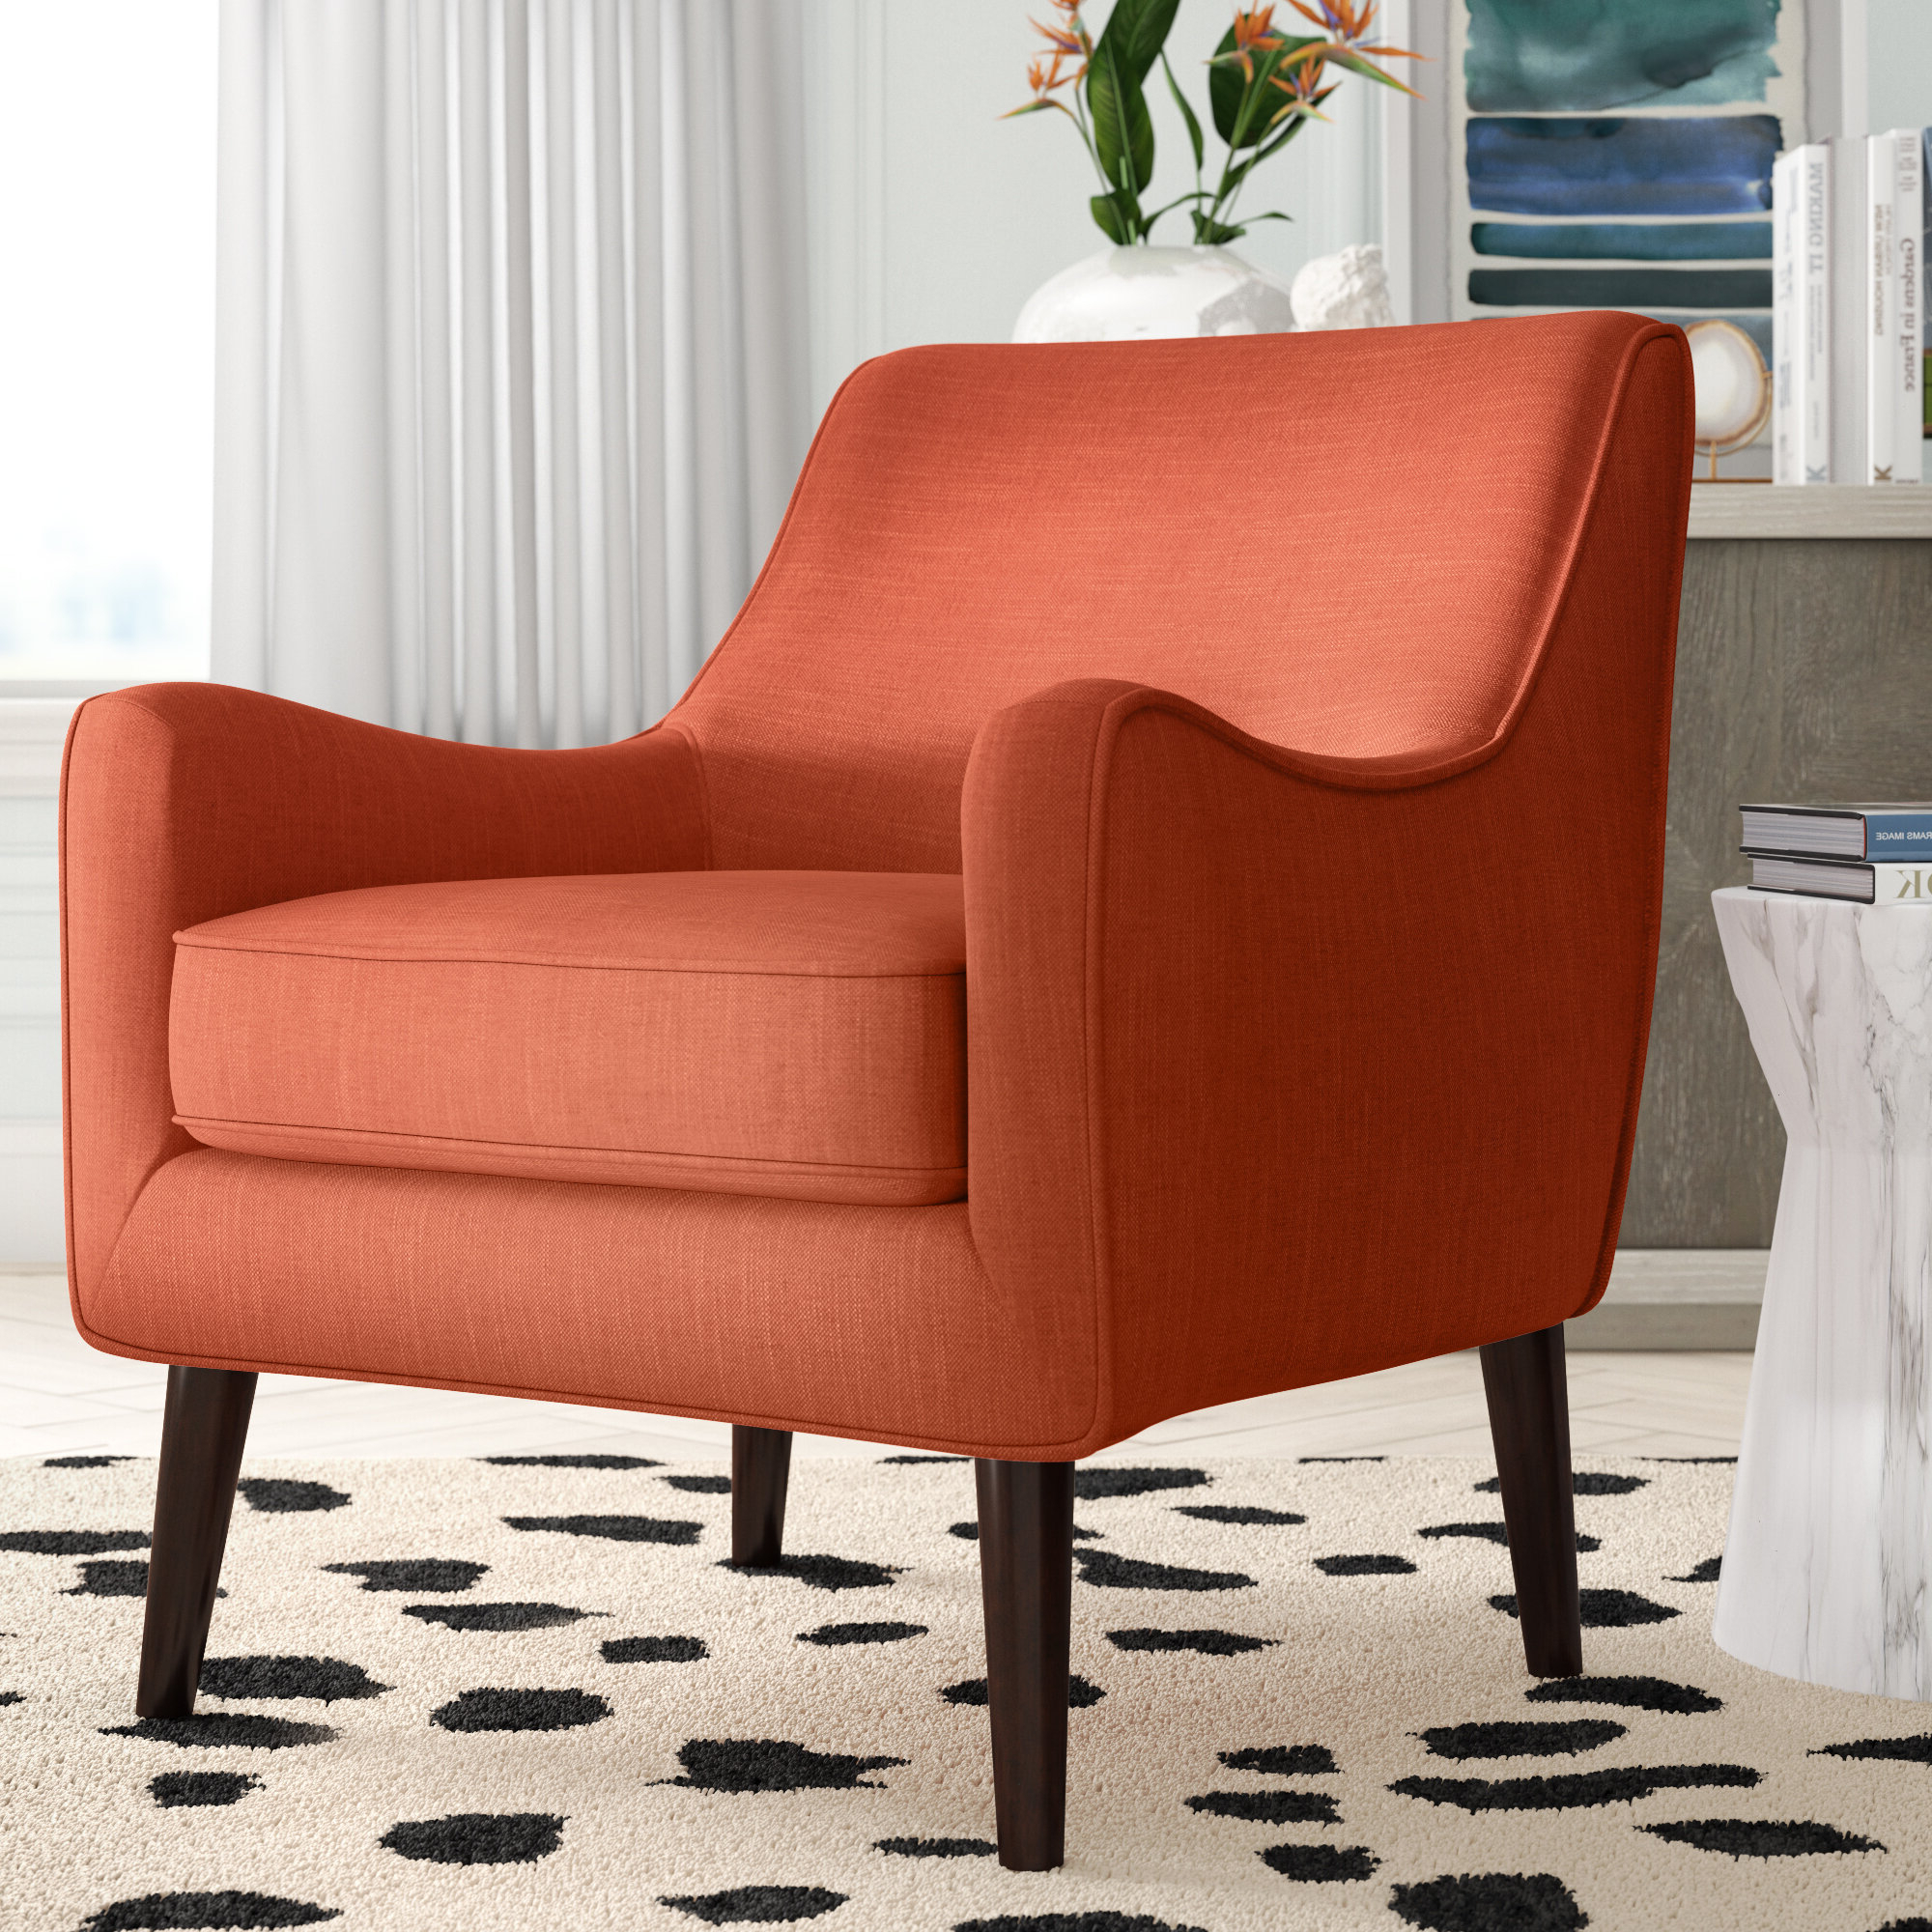 Spraggins Armchair Throughout Most Current Draco Armchairs (View 10 of 20)